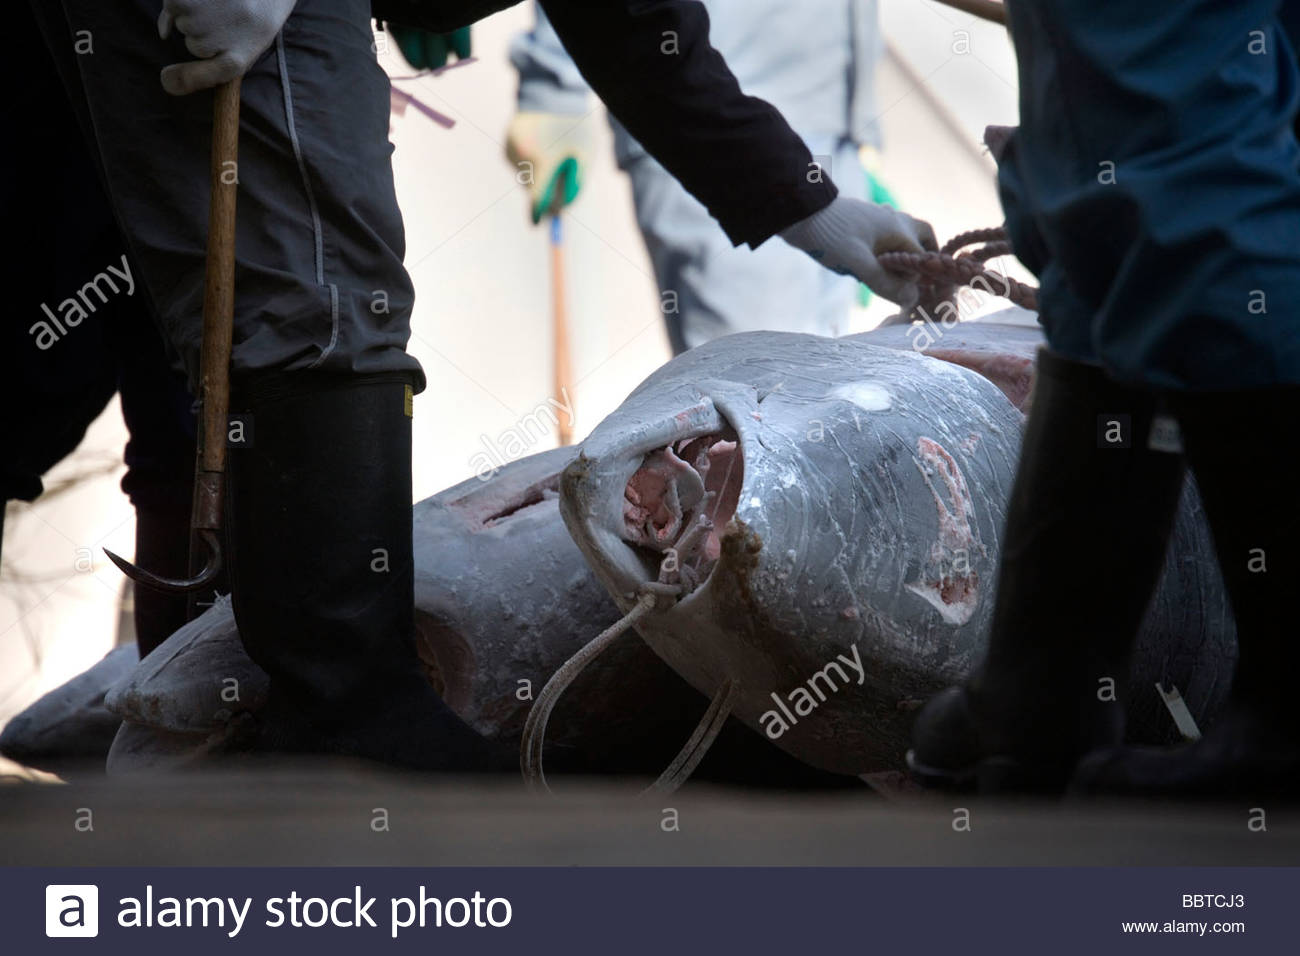 deep frozen Tuna being loaded on to a truck Japan - Stock Image